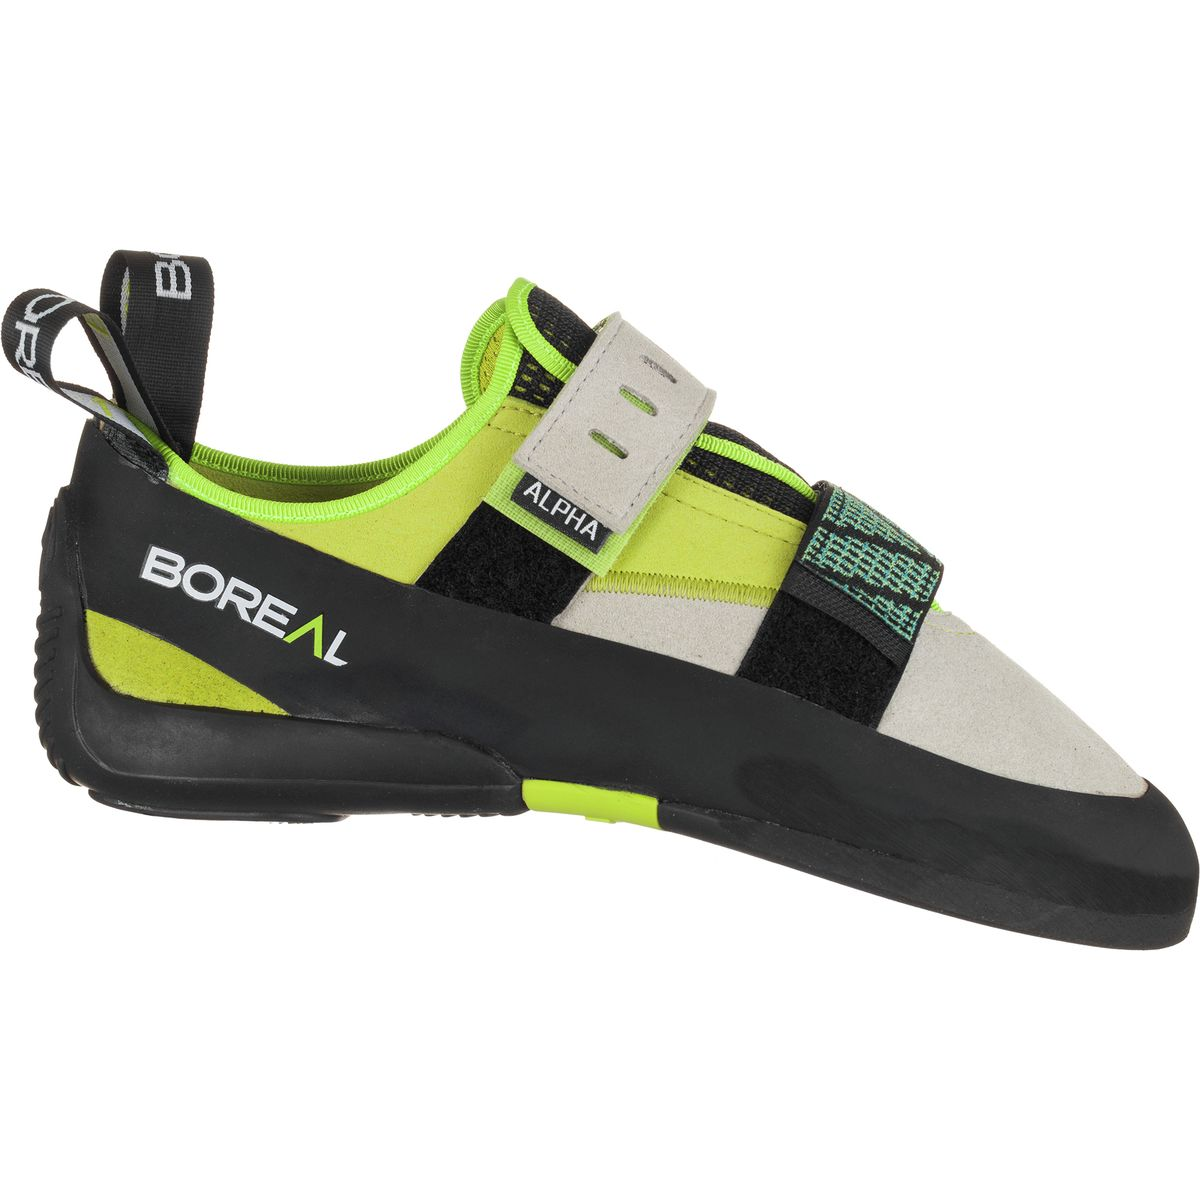 photo: Boreal Alpha climbing shoe